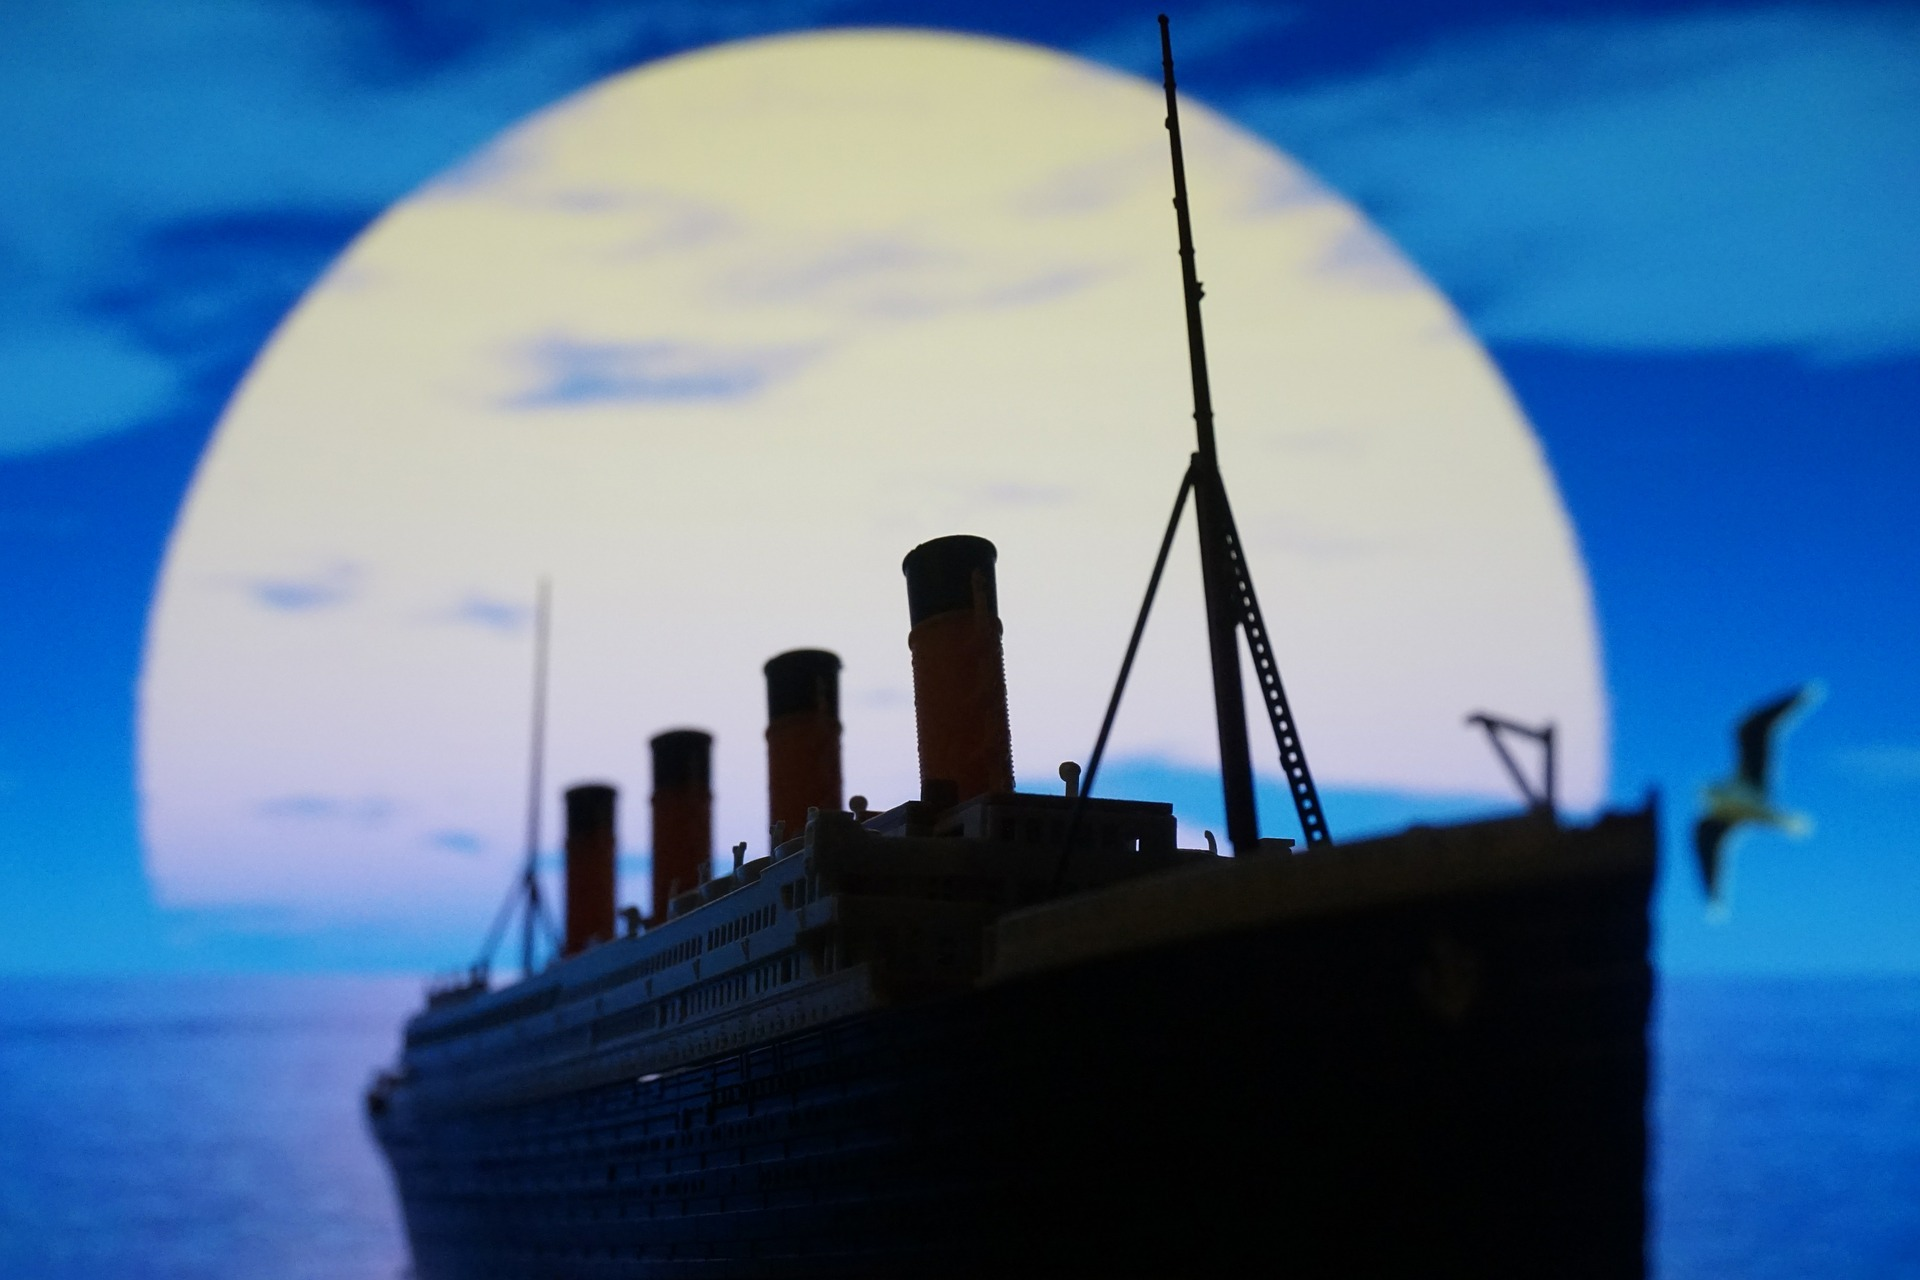 Illustrated picture of the Titanic